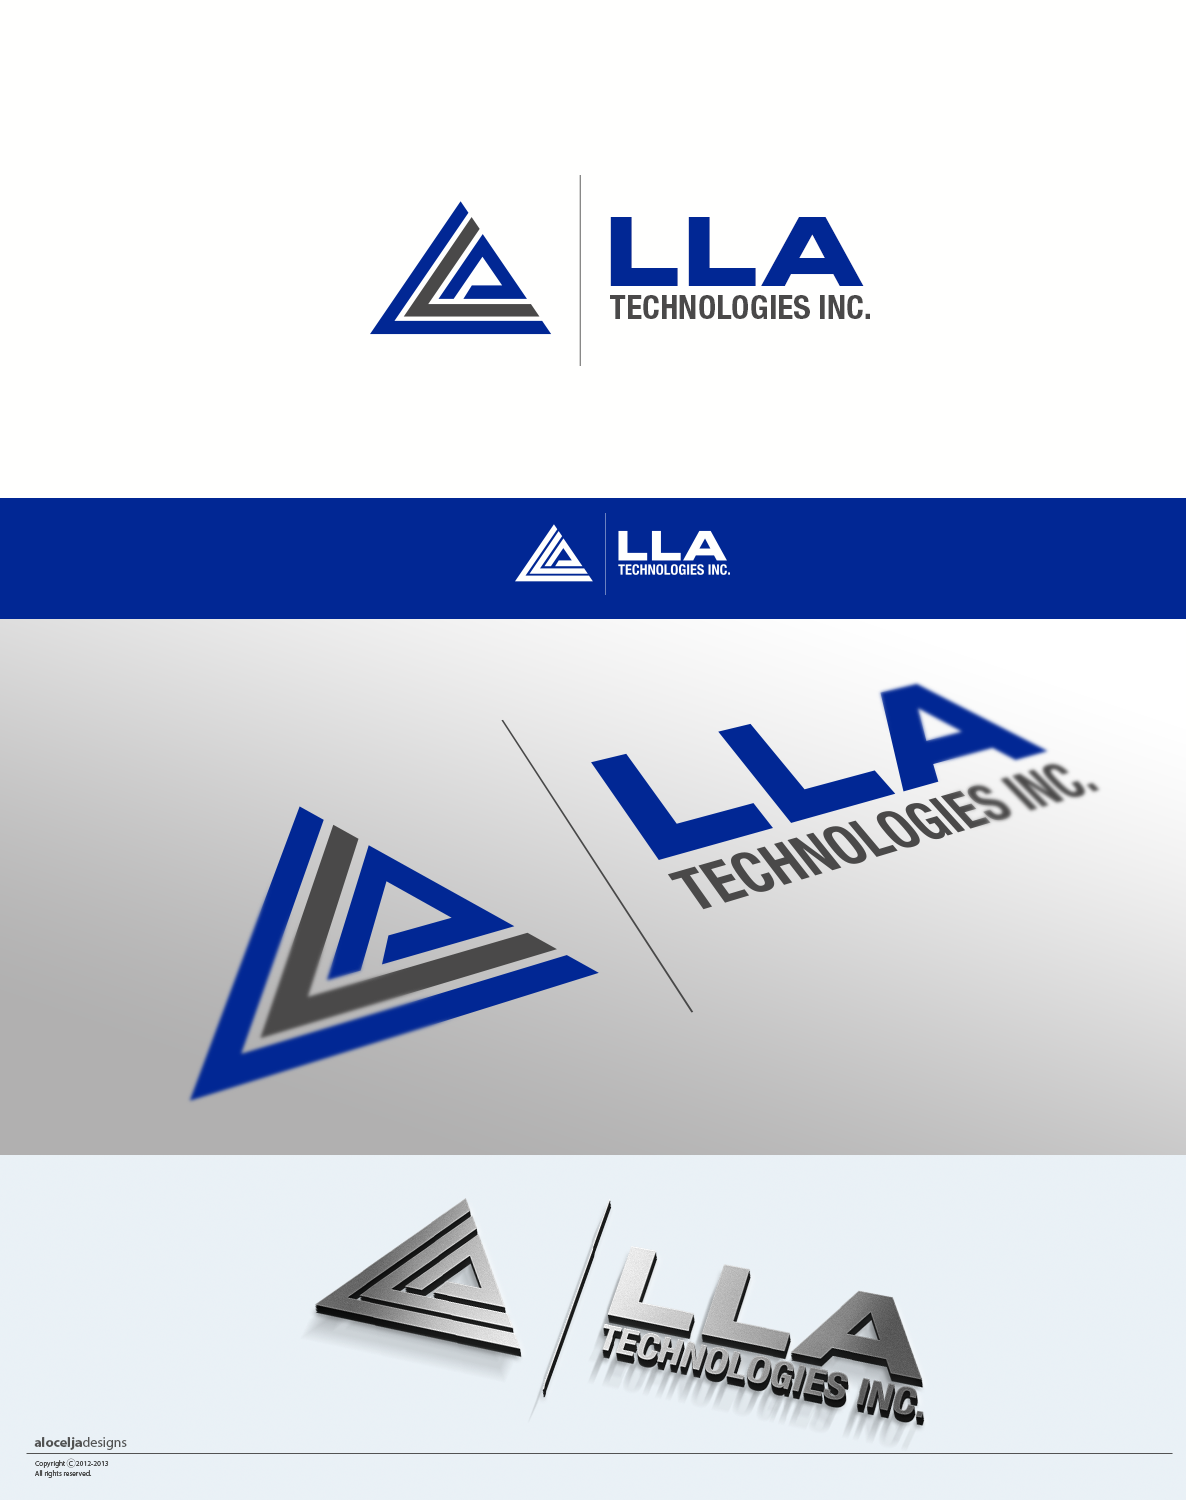 Logo Design by alocelja - Entry No. 124 in the Logo Design Contest Inspiring Logo Design for LLA Technologies Inc..